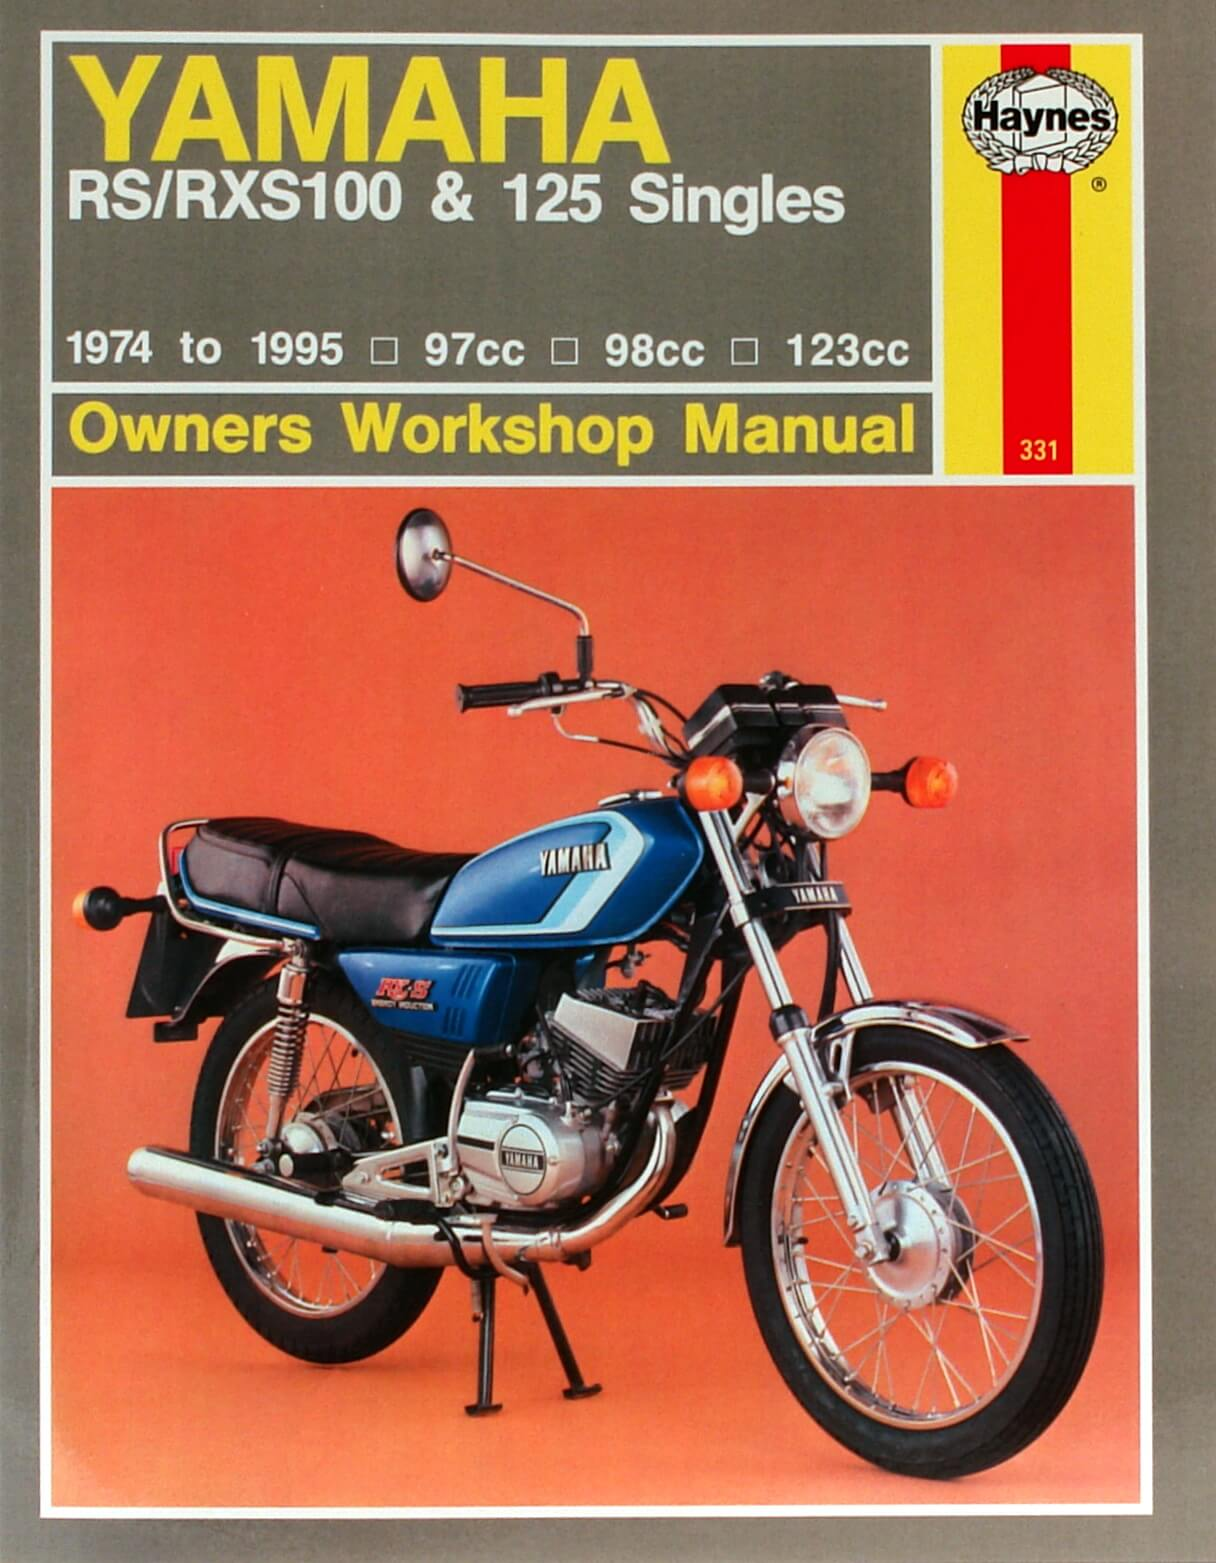 Rx100 Workshop Manual - Man003 - Manuals And Parts Books - Parts By Type